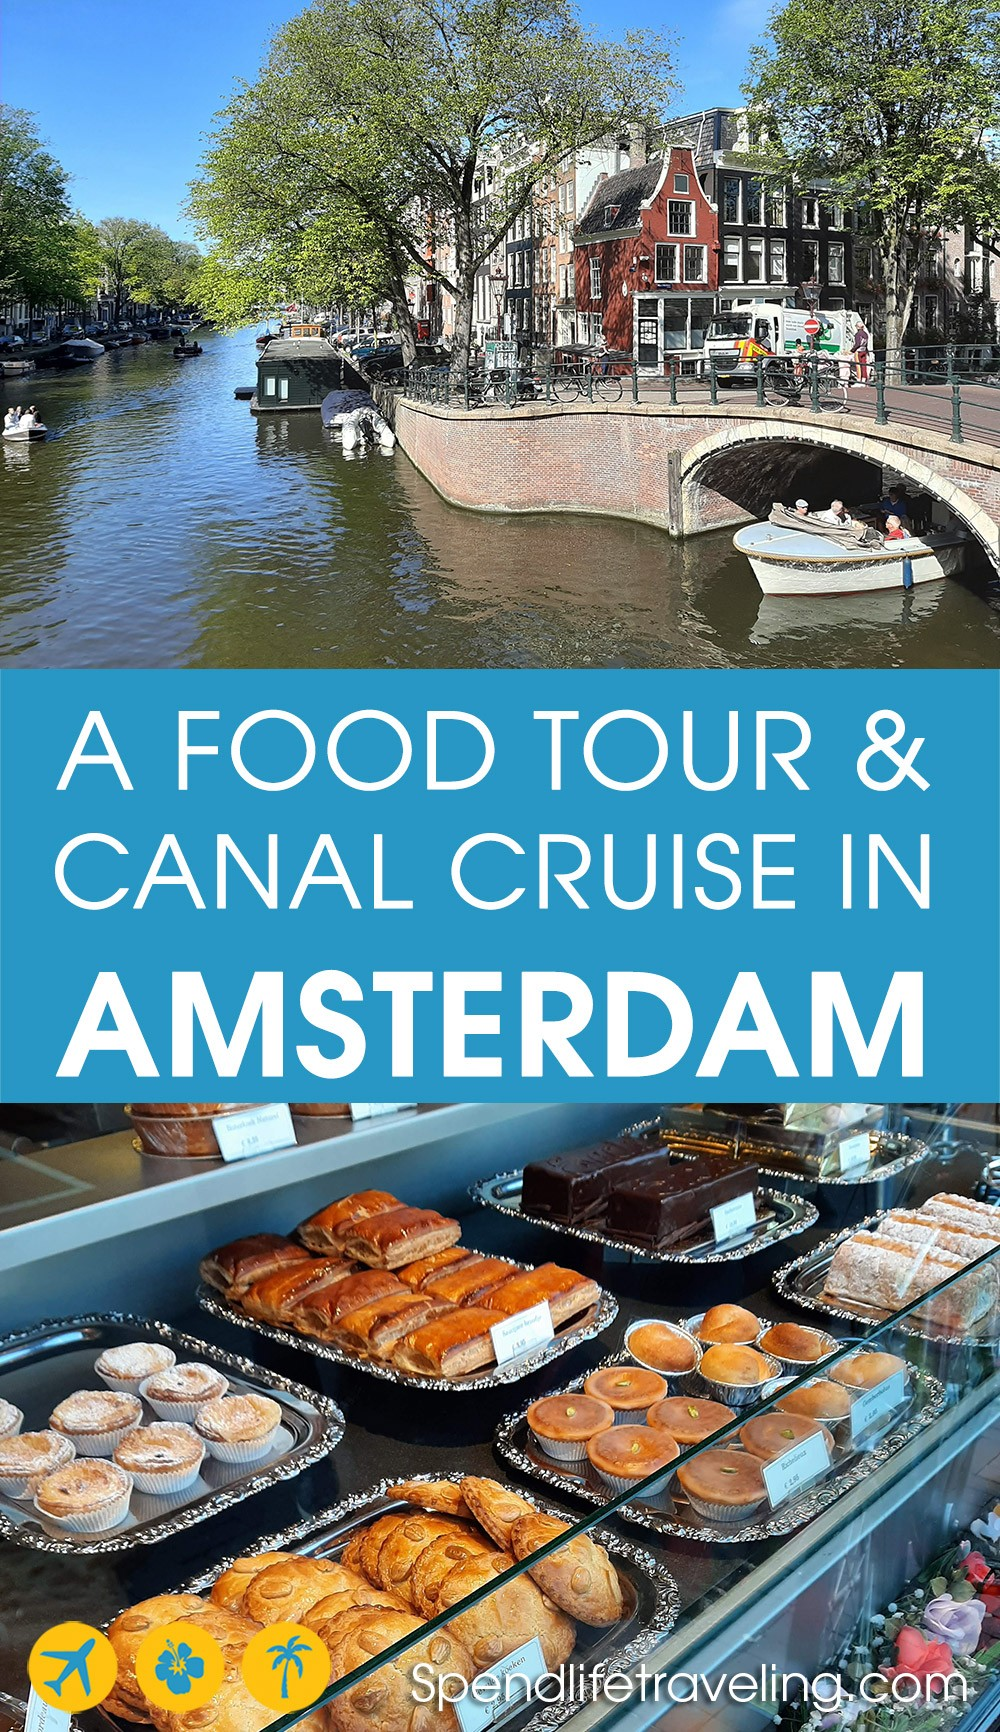 Looking for interesting tours in #Amsterdam? Check out this food tour and canal cruise! #foodtour #Amsterdamtours #Amsterdamactivities